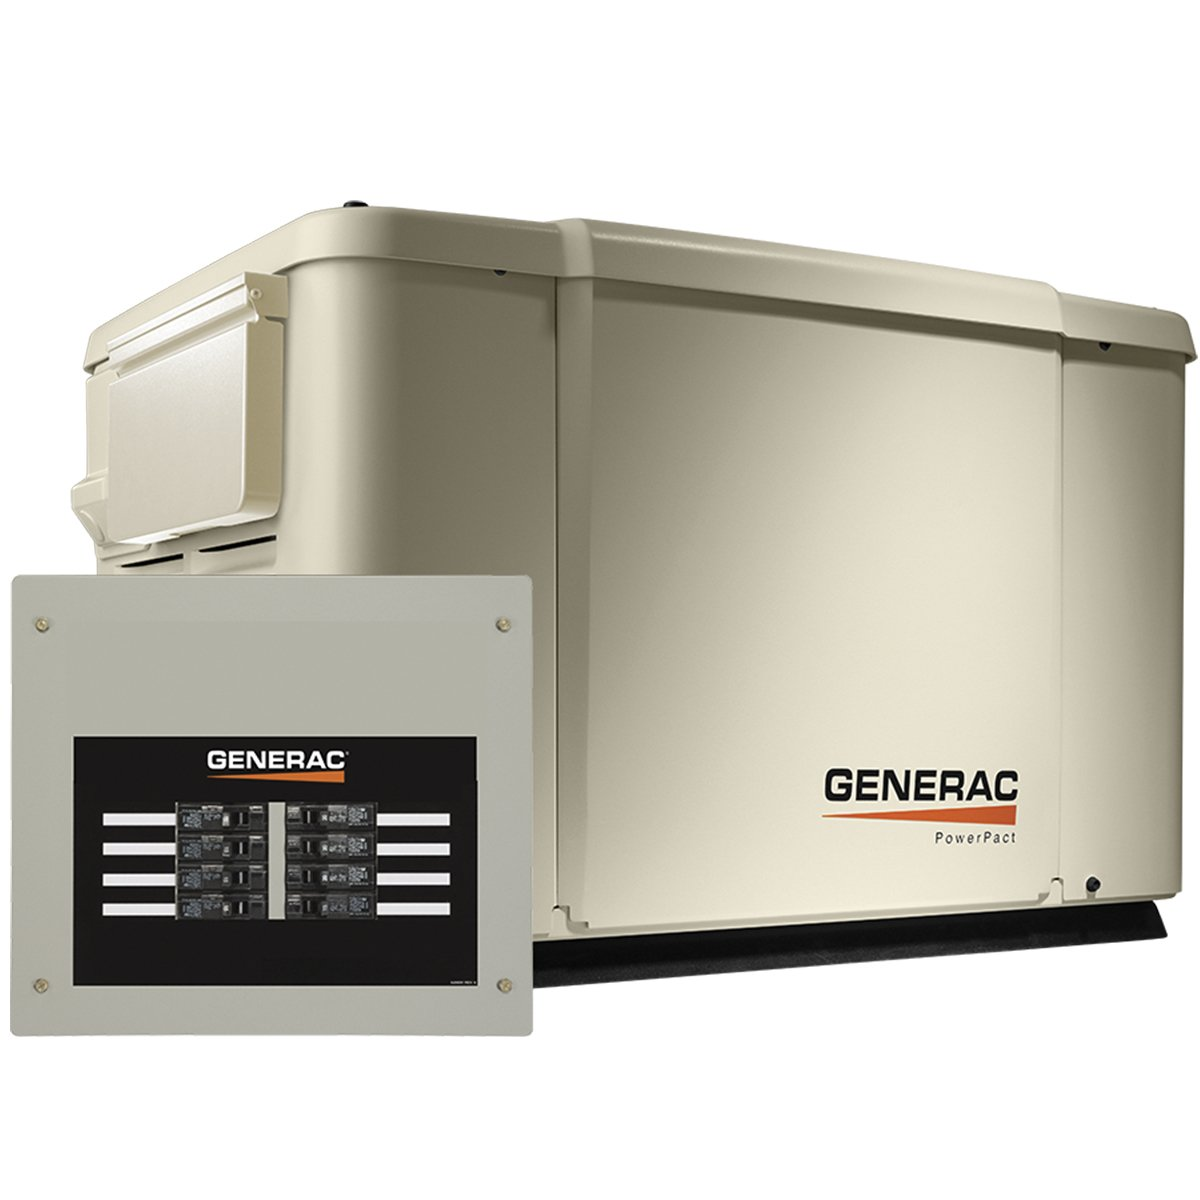 Amazon.com : Generac 6998 Guardian Series 7.5kW/6kW Air Cooled Home Standby  Generator with 8 Circuit 50 Amp Transfer Switch : Garden & Outdoor